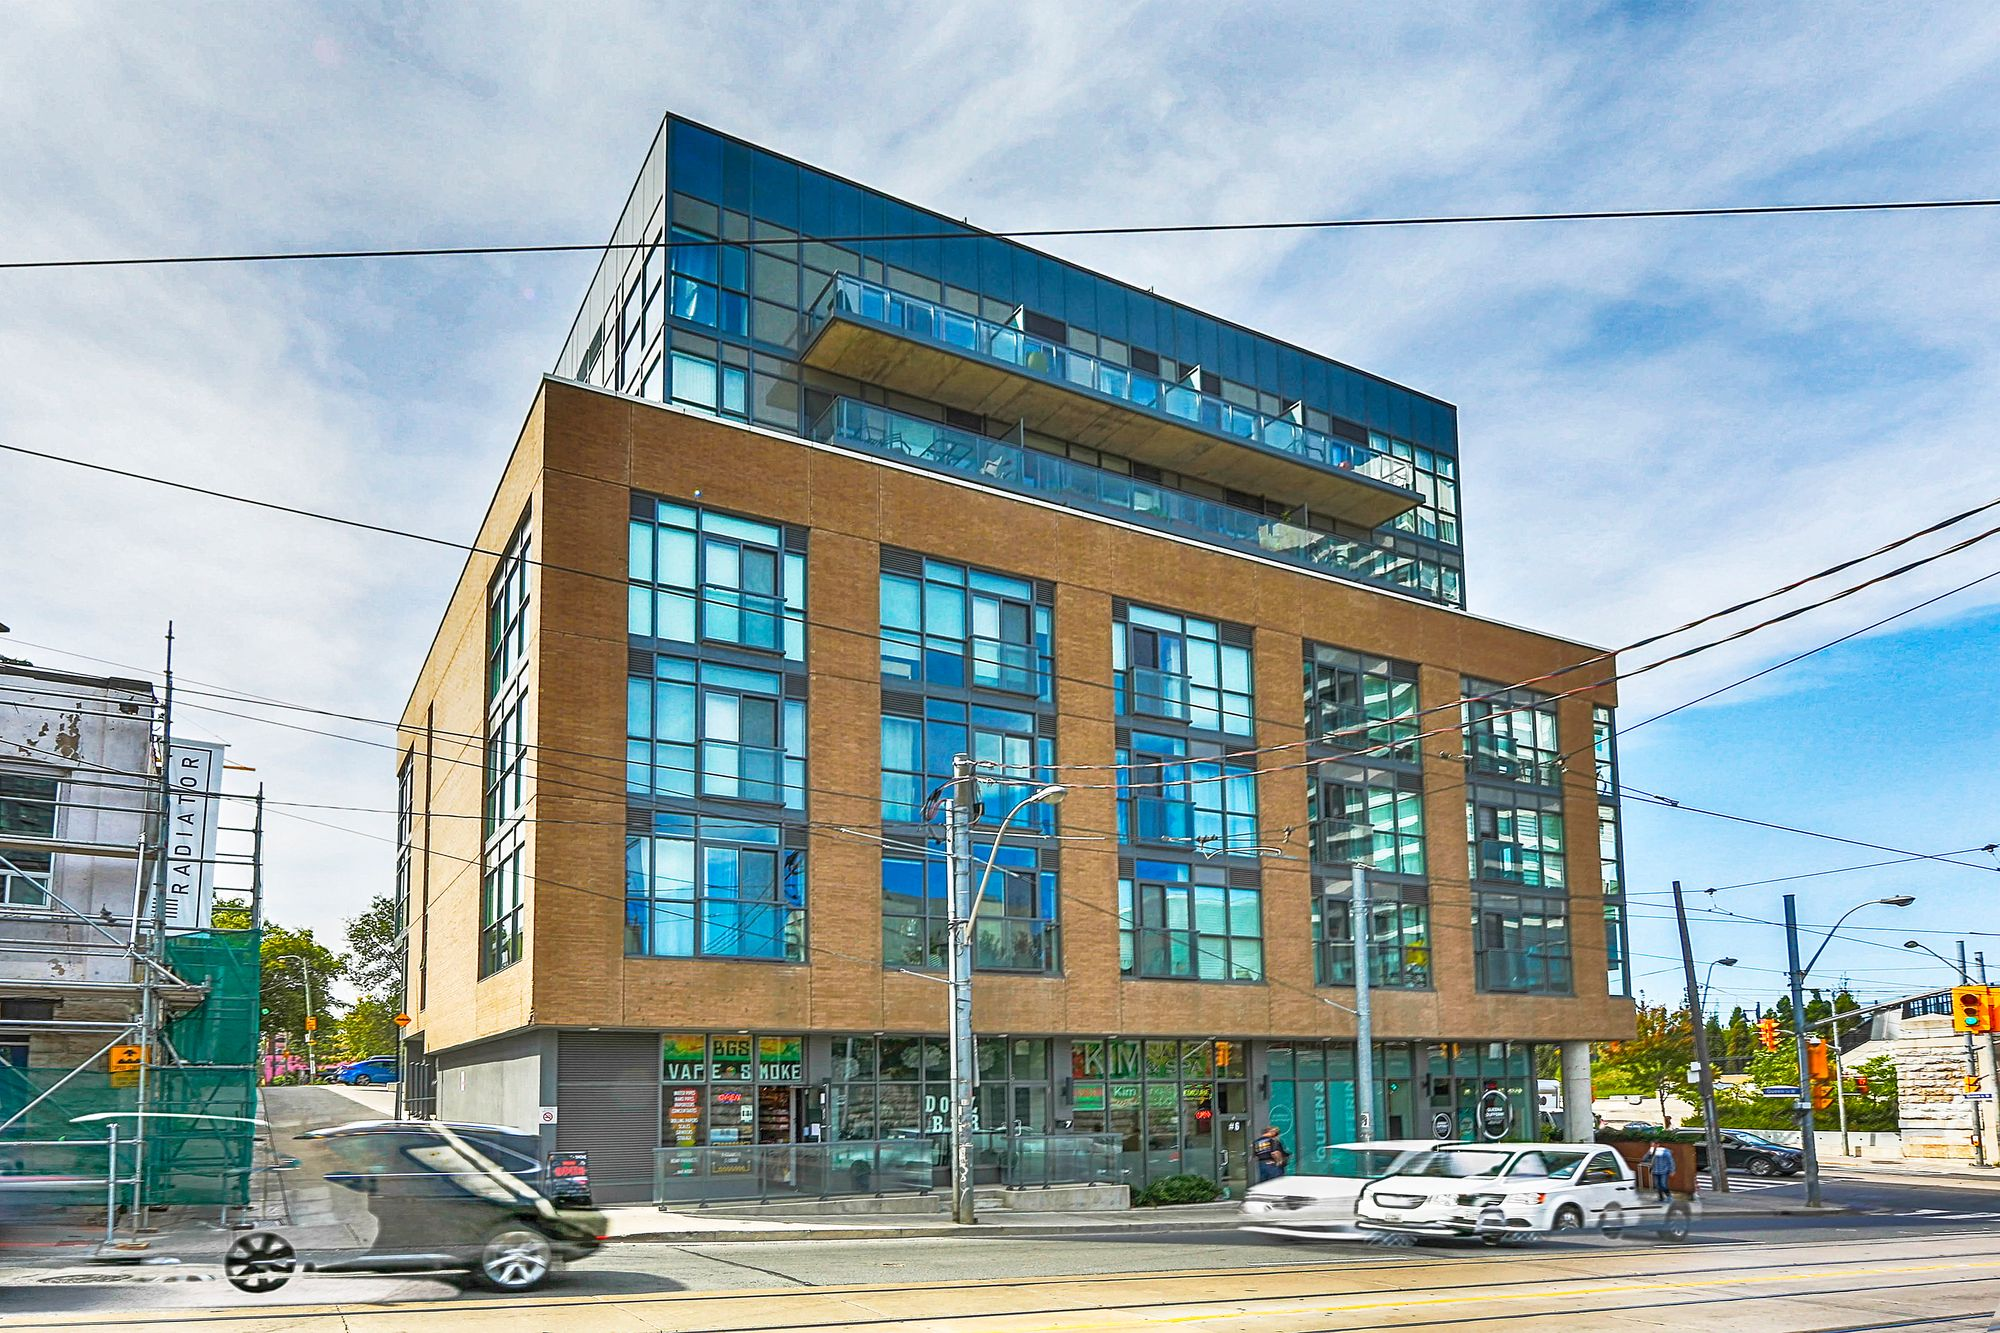 1205 Queen St W, unit 305 for sale in Parkdale - image #1